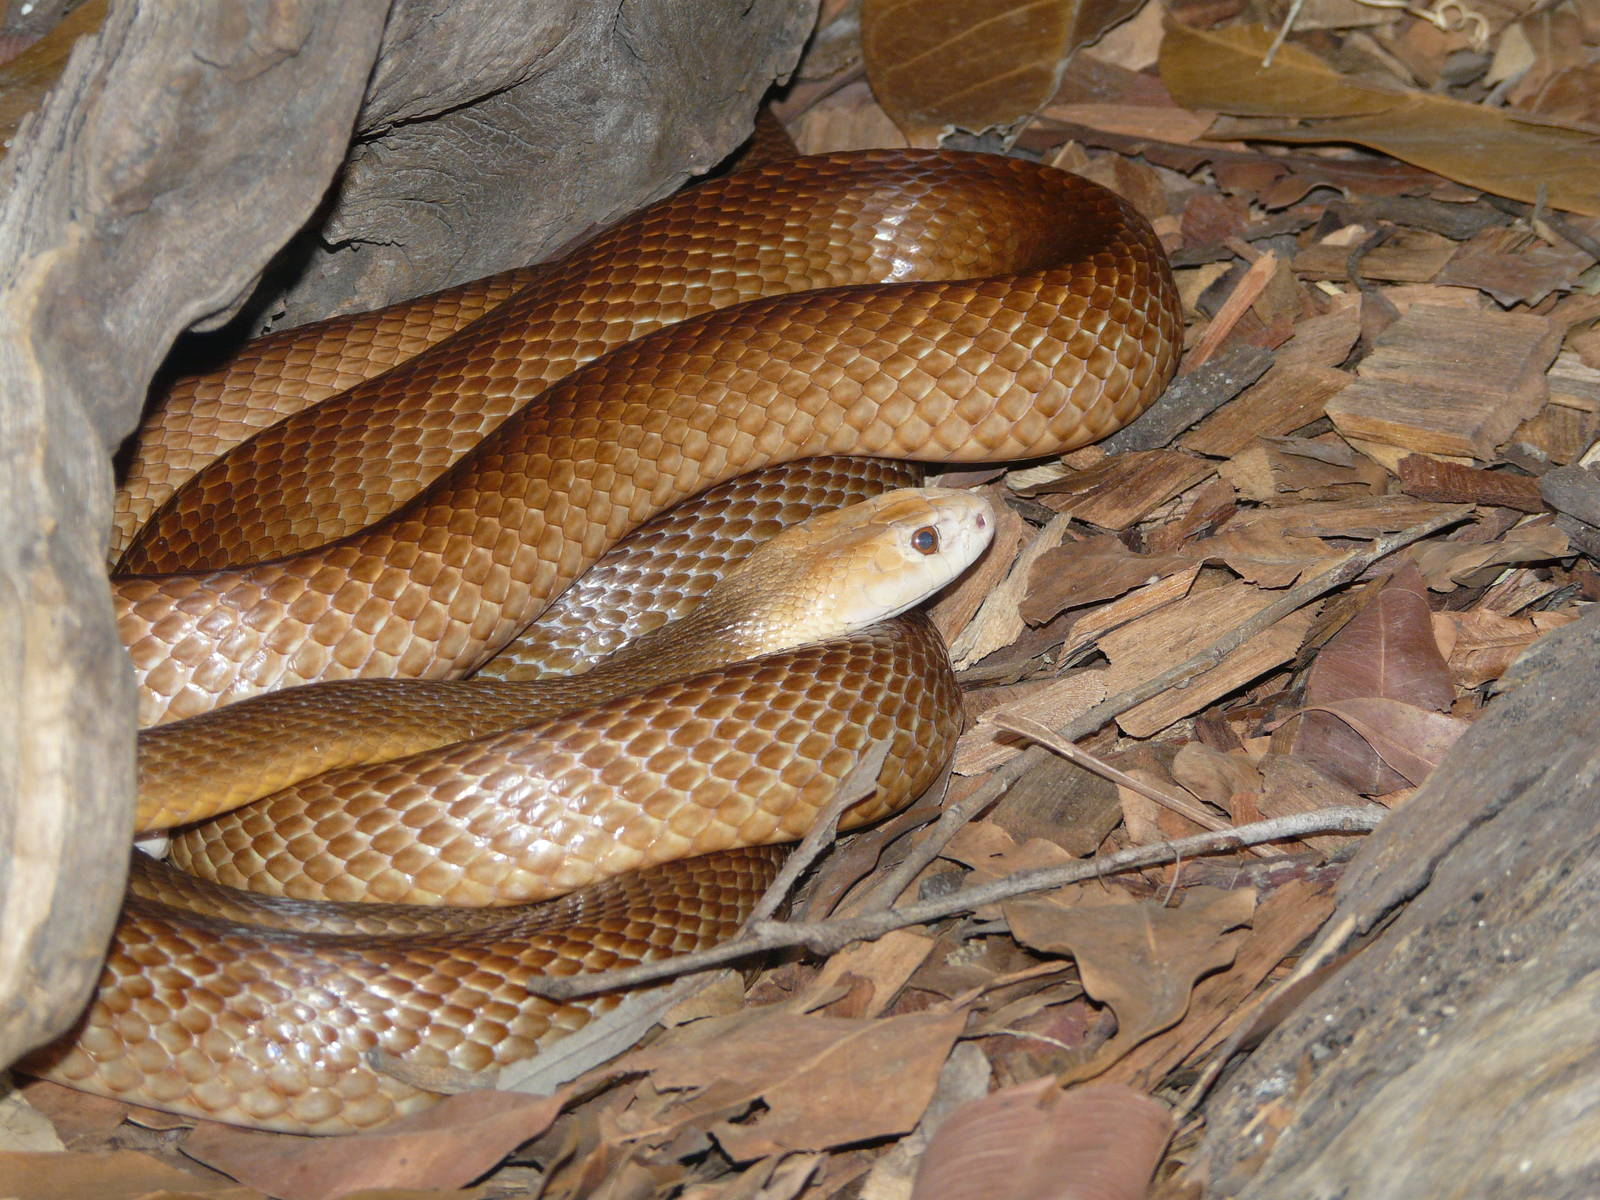 Wildlife Of The World Taipan Snake Facts And Danger Images